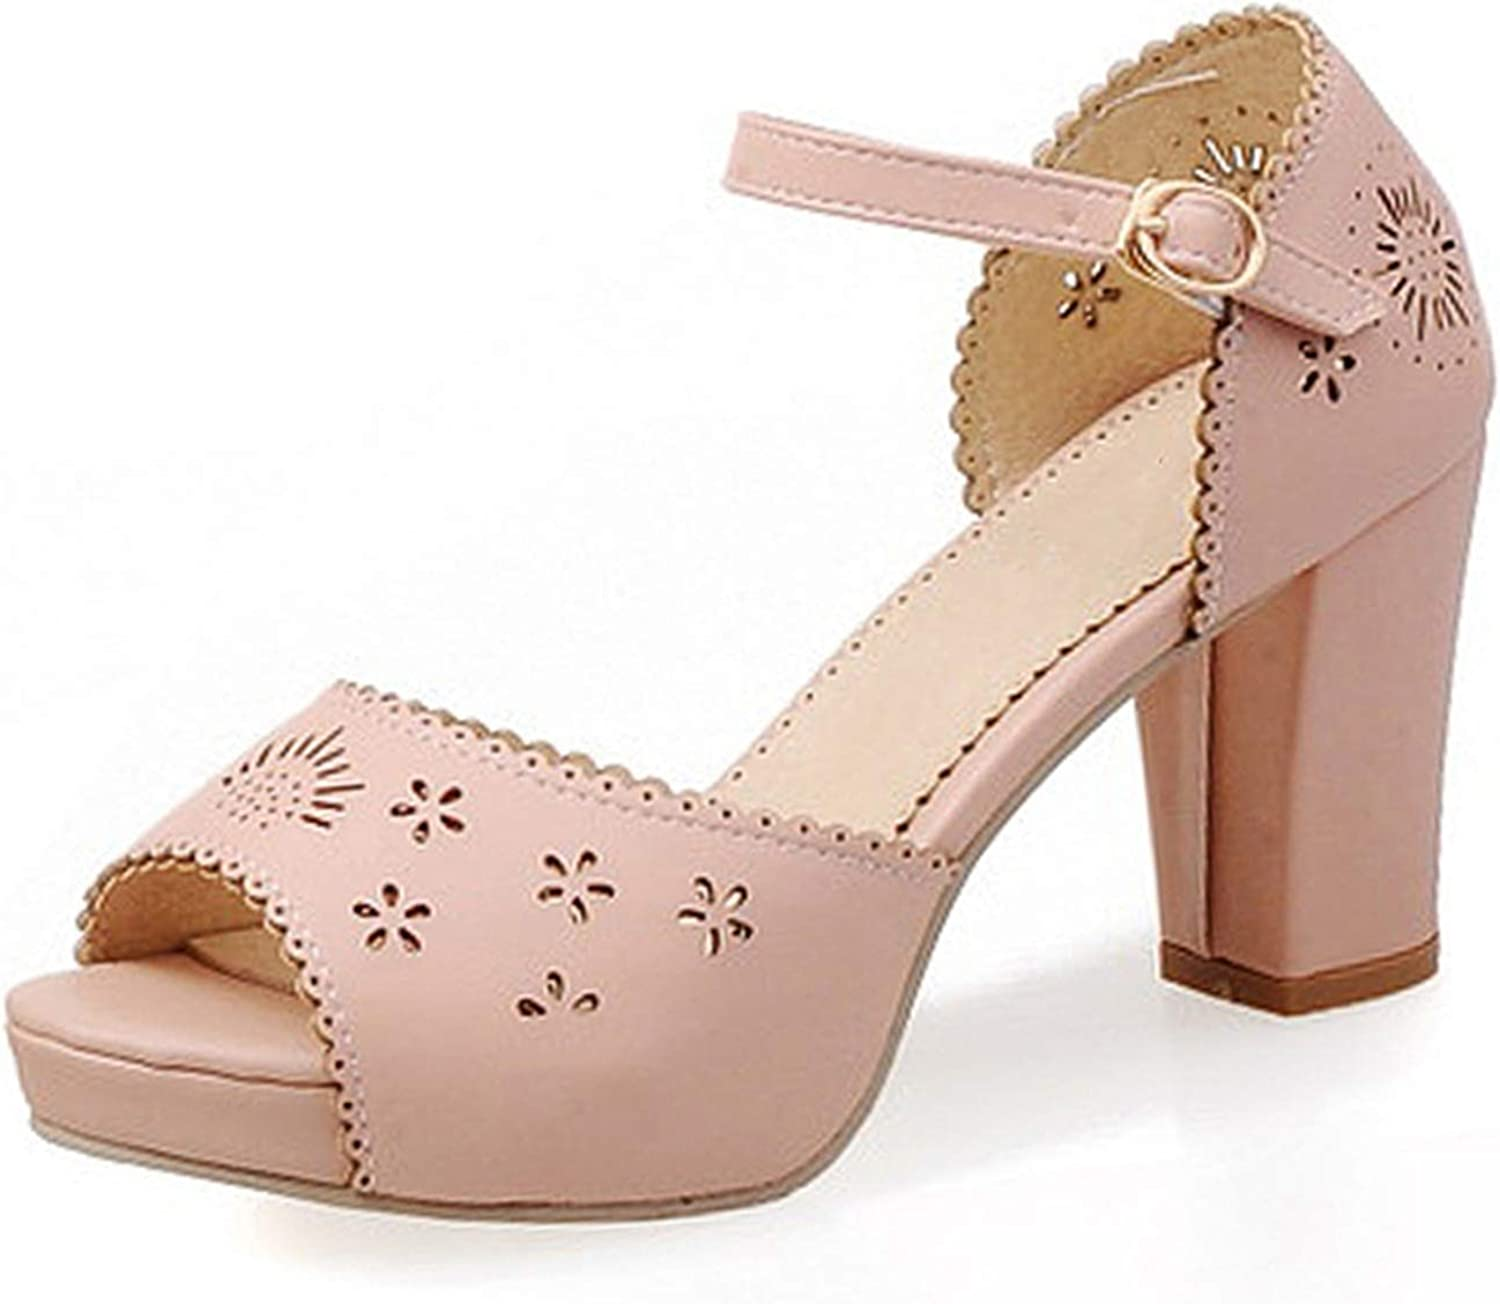 April With You Size 31-43 Office Lady High Heel Sandals Ankle Strap Peep Toe Thick Heels Sandals